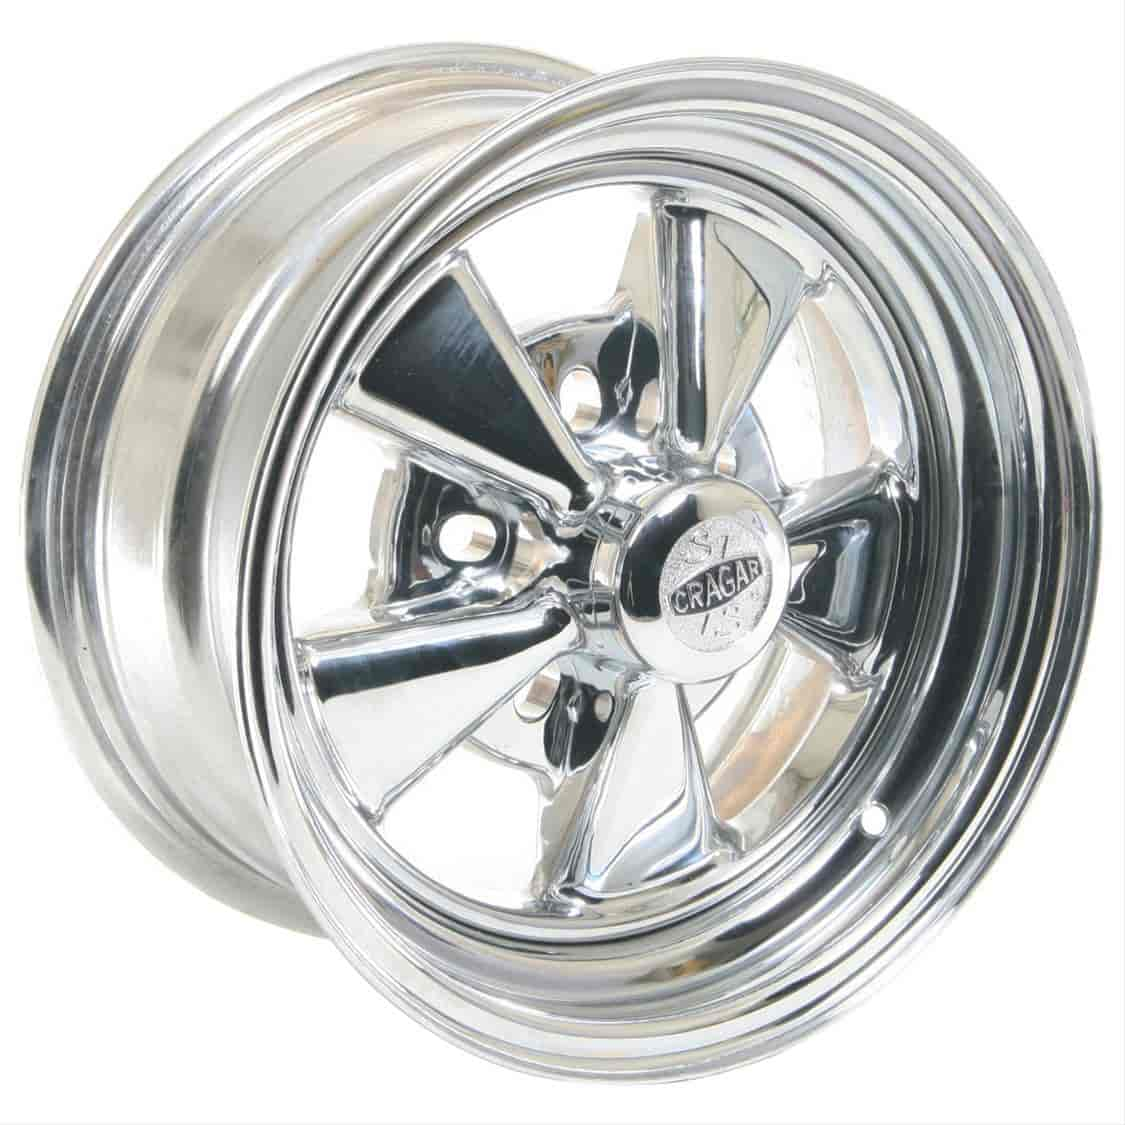 Cragar 61215 - Cragar 08/61 Series S/S Super Sport Wheels